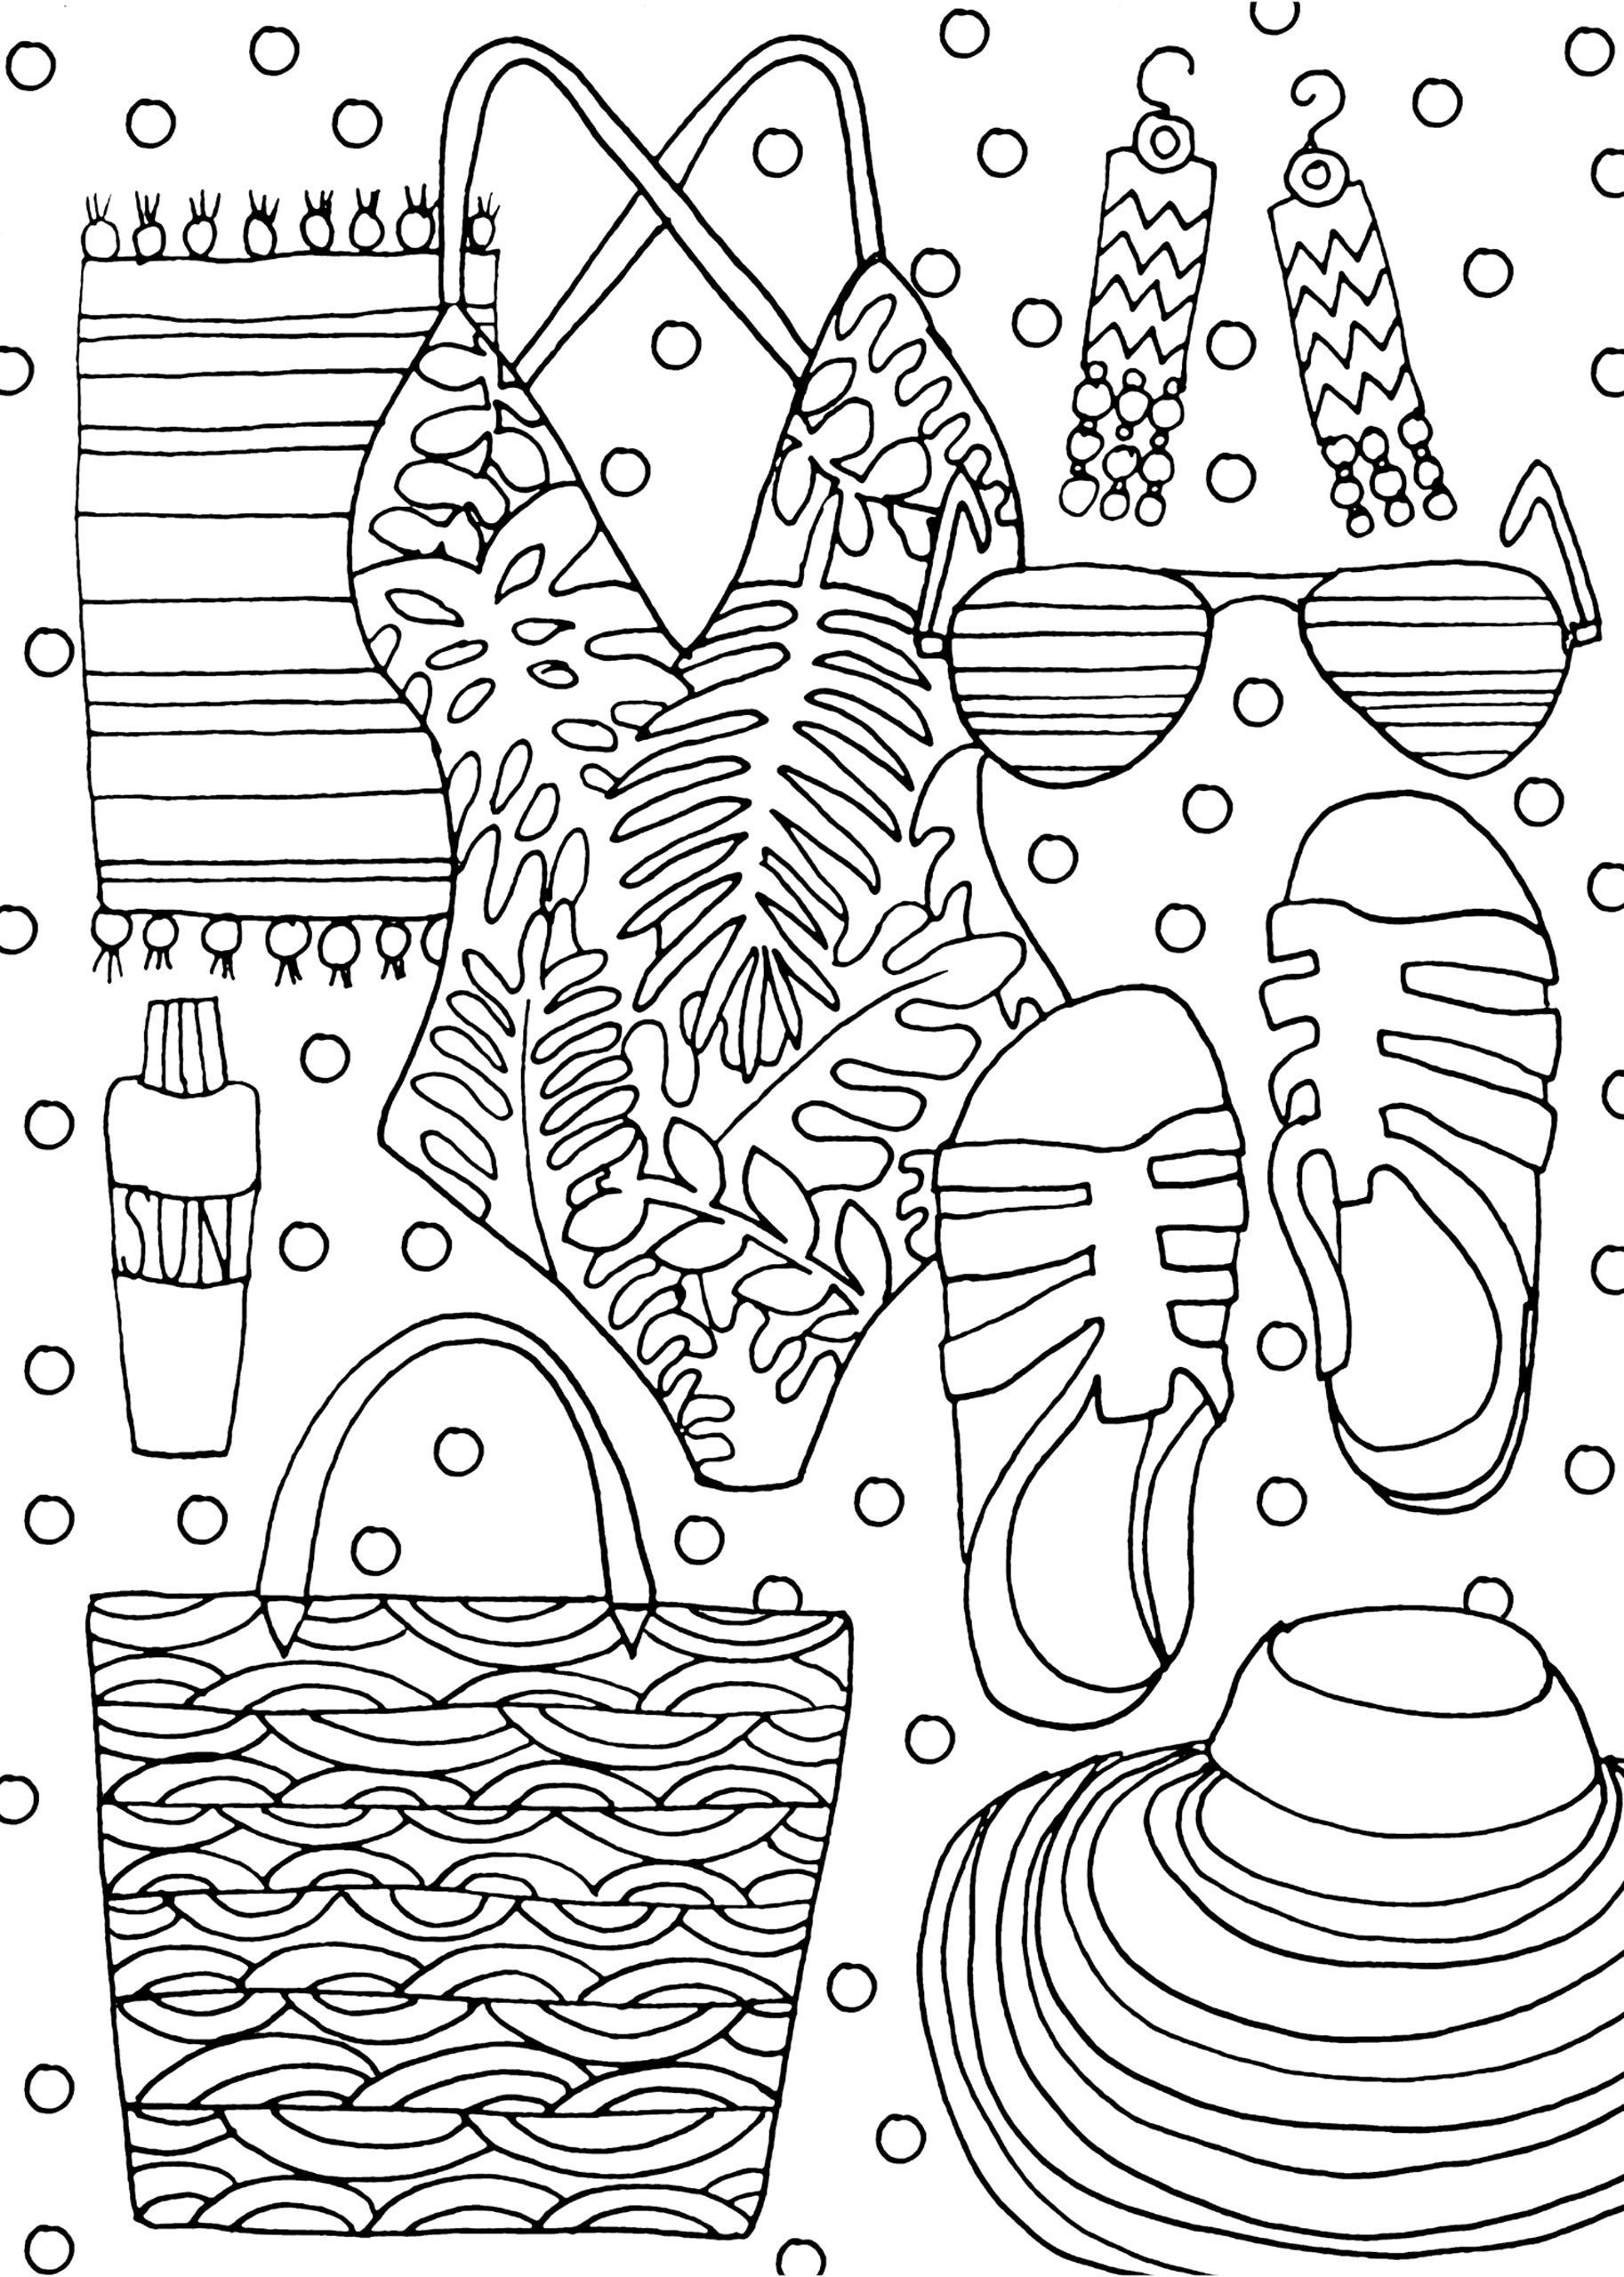 Tension Relief Tips Fashion Coloring Adult Coloring